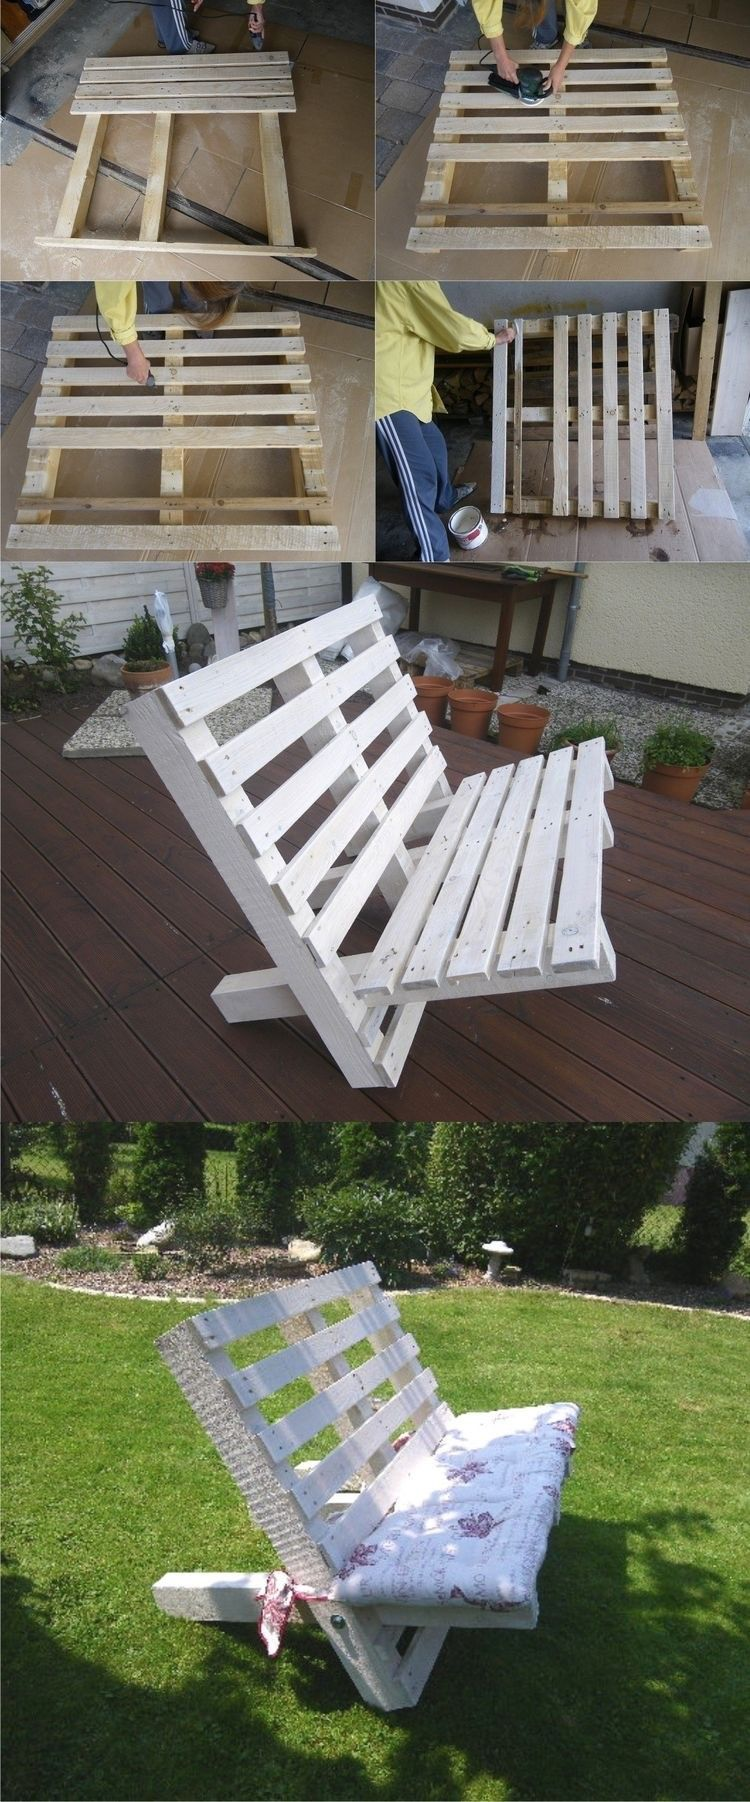 The best diy wood and pallet ideas things to make with old wooden pallets